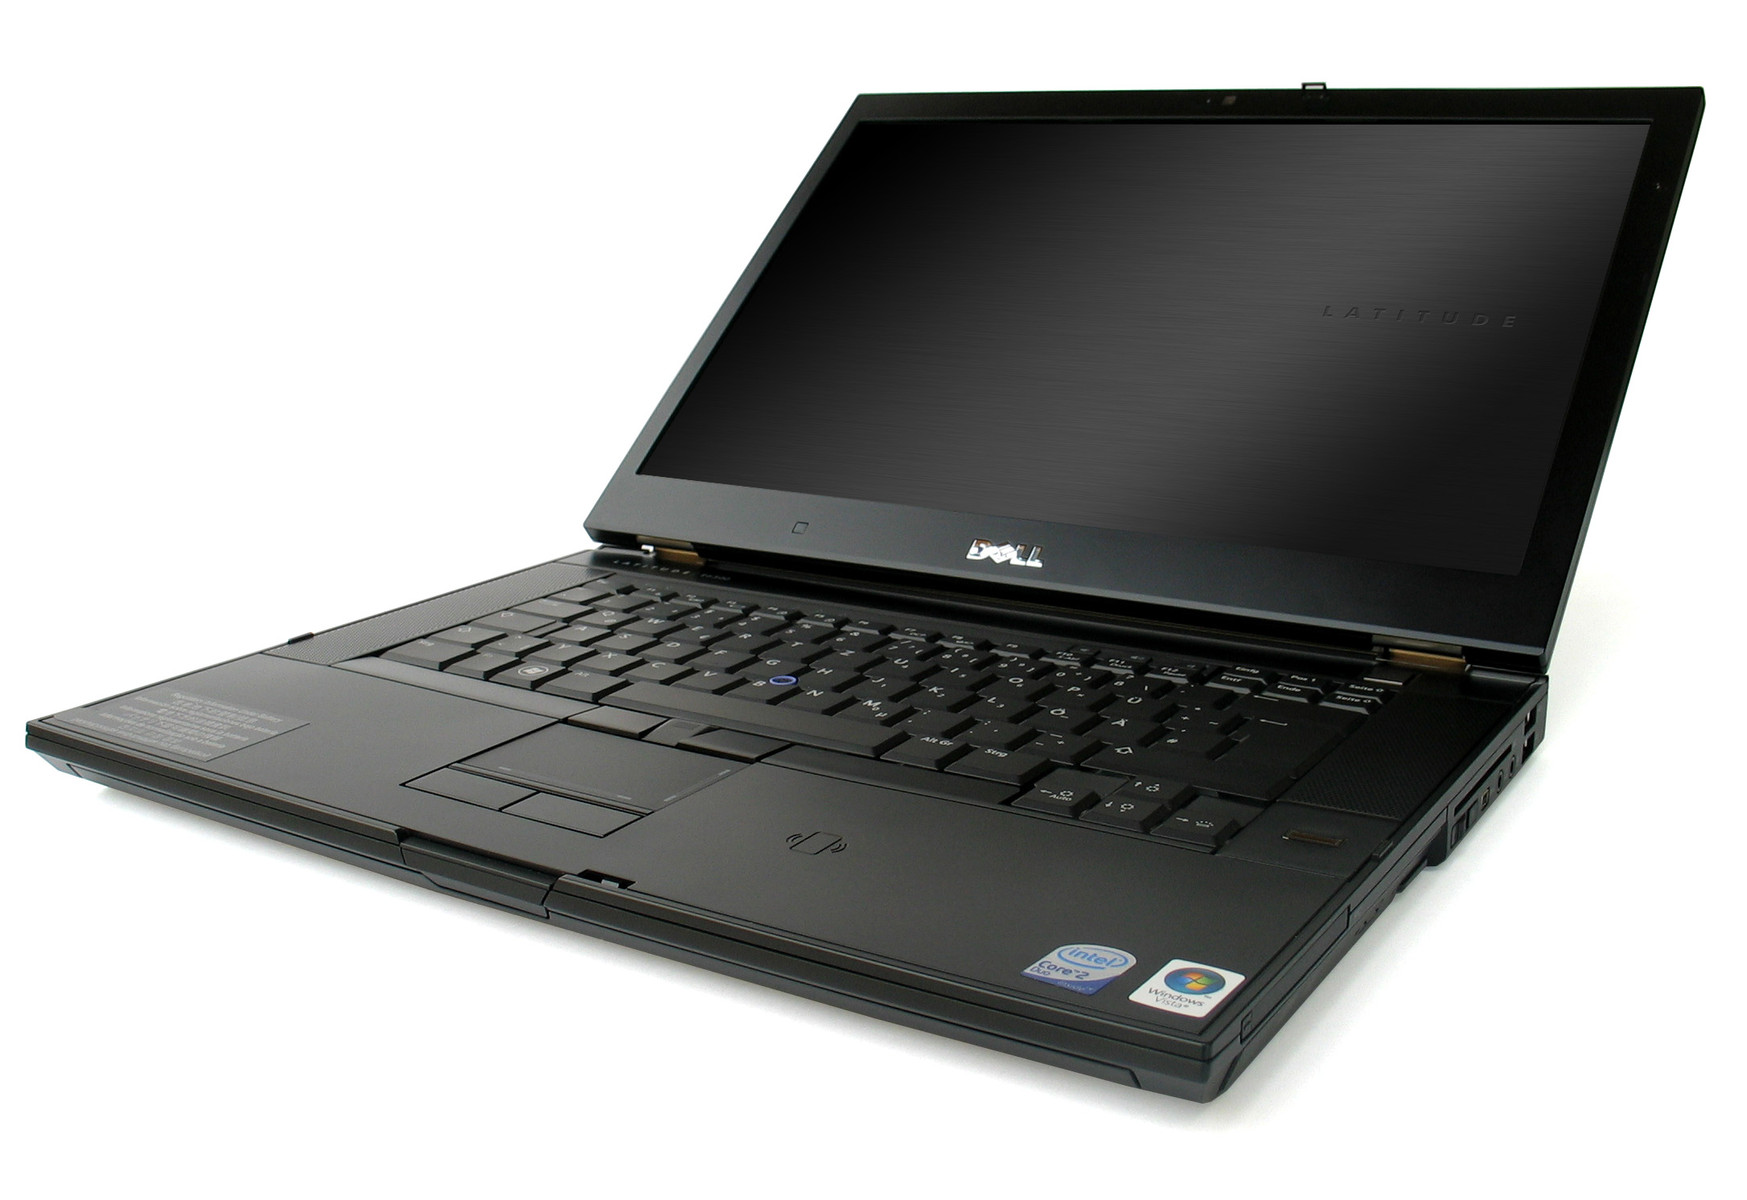 Dell Latitude E6500 Bios